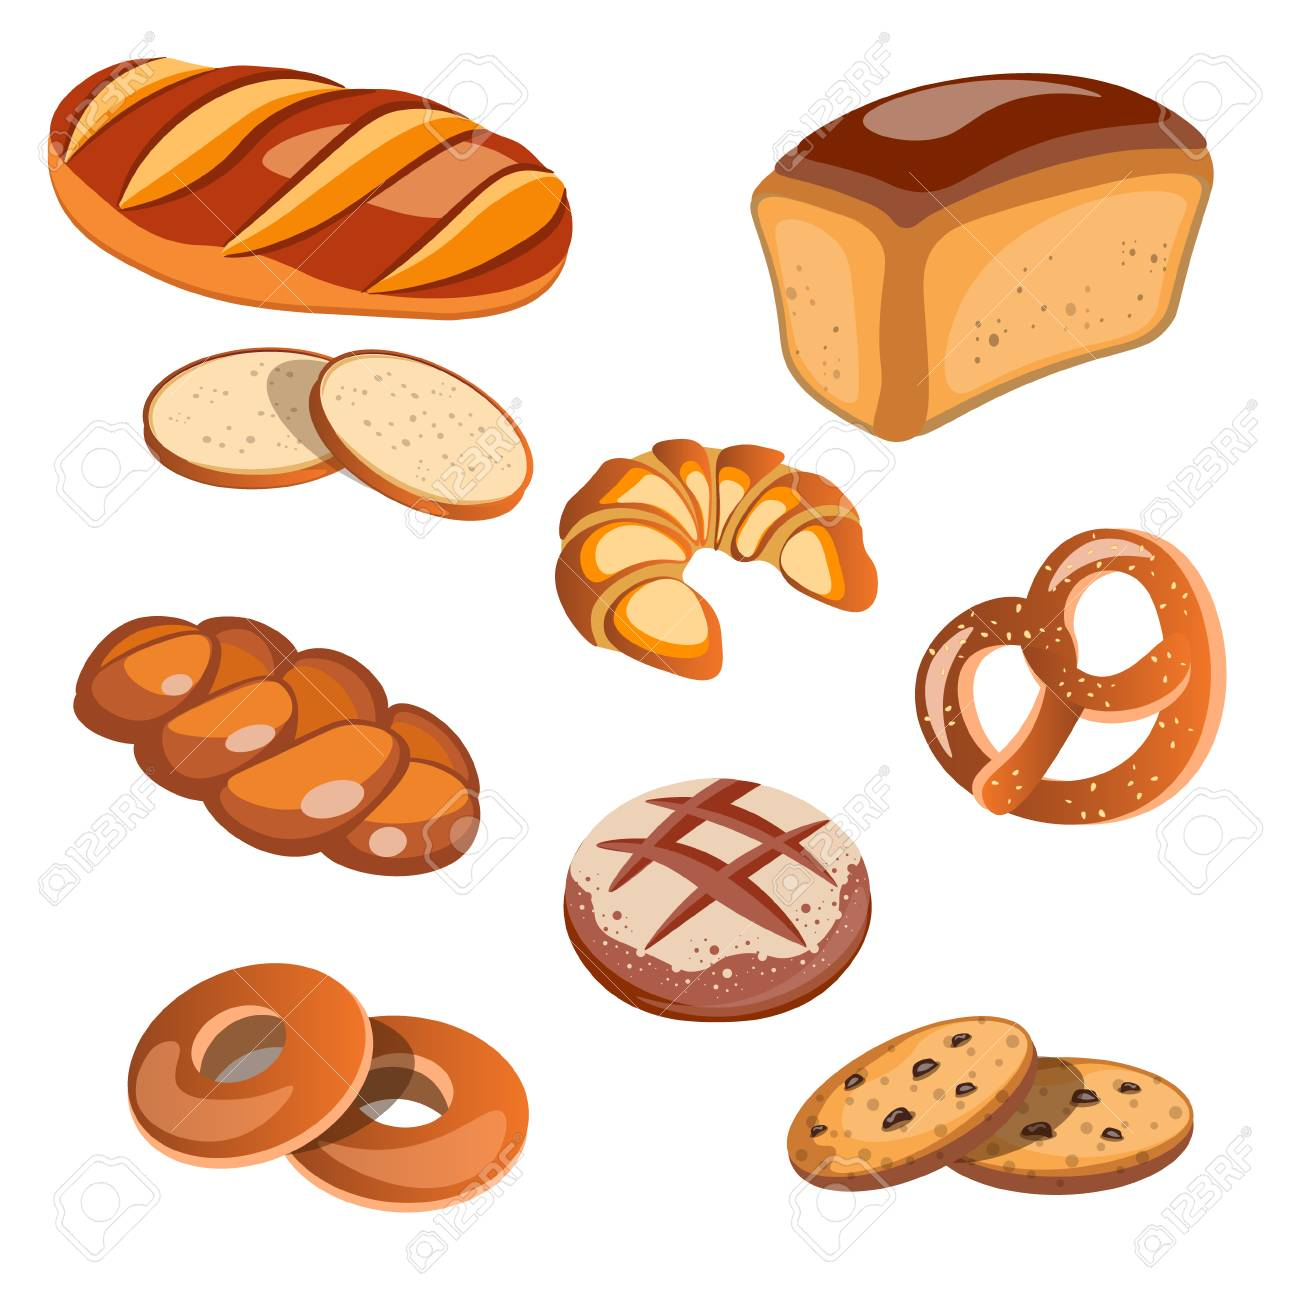 Set of bread products isolated. Vector illustration - 88259915